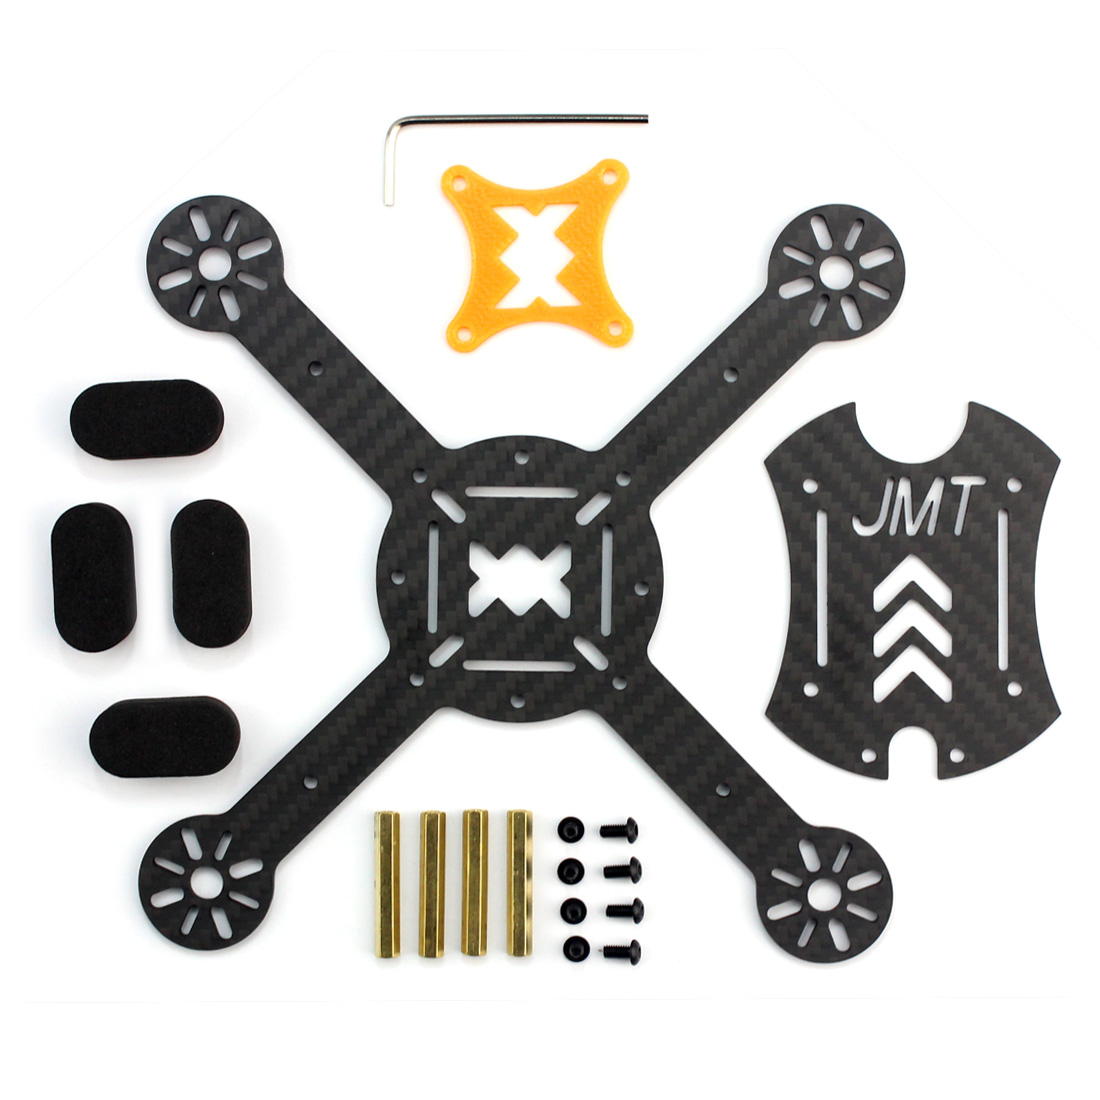 JMT X180 DIY Quadcopter PNP Assembled Racer Kit 180mm Super Light Mini RC Racing Drone with OSD FPV HD Camera NO RX TX Battery